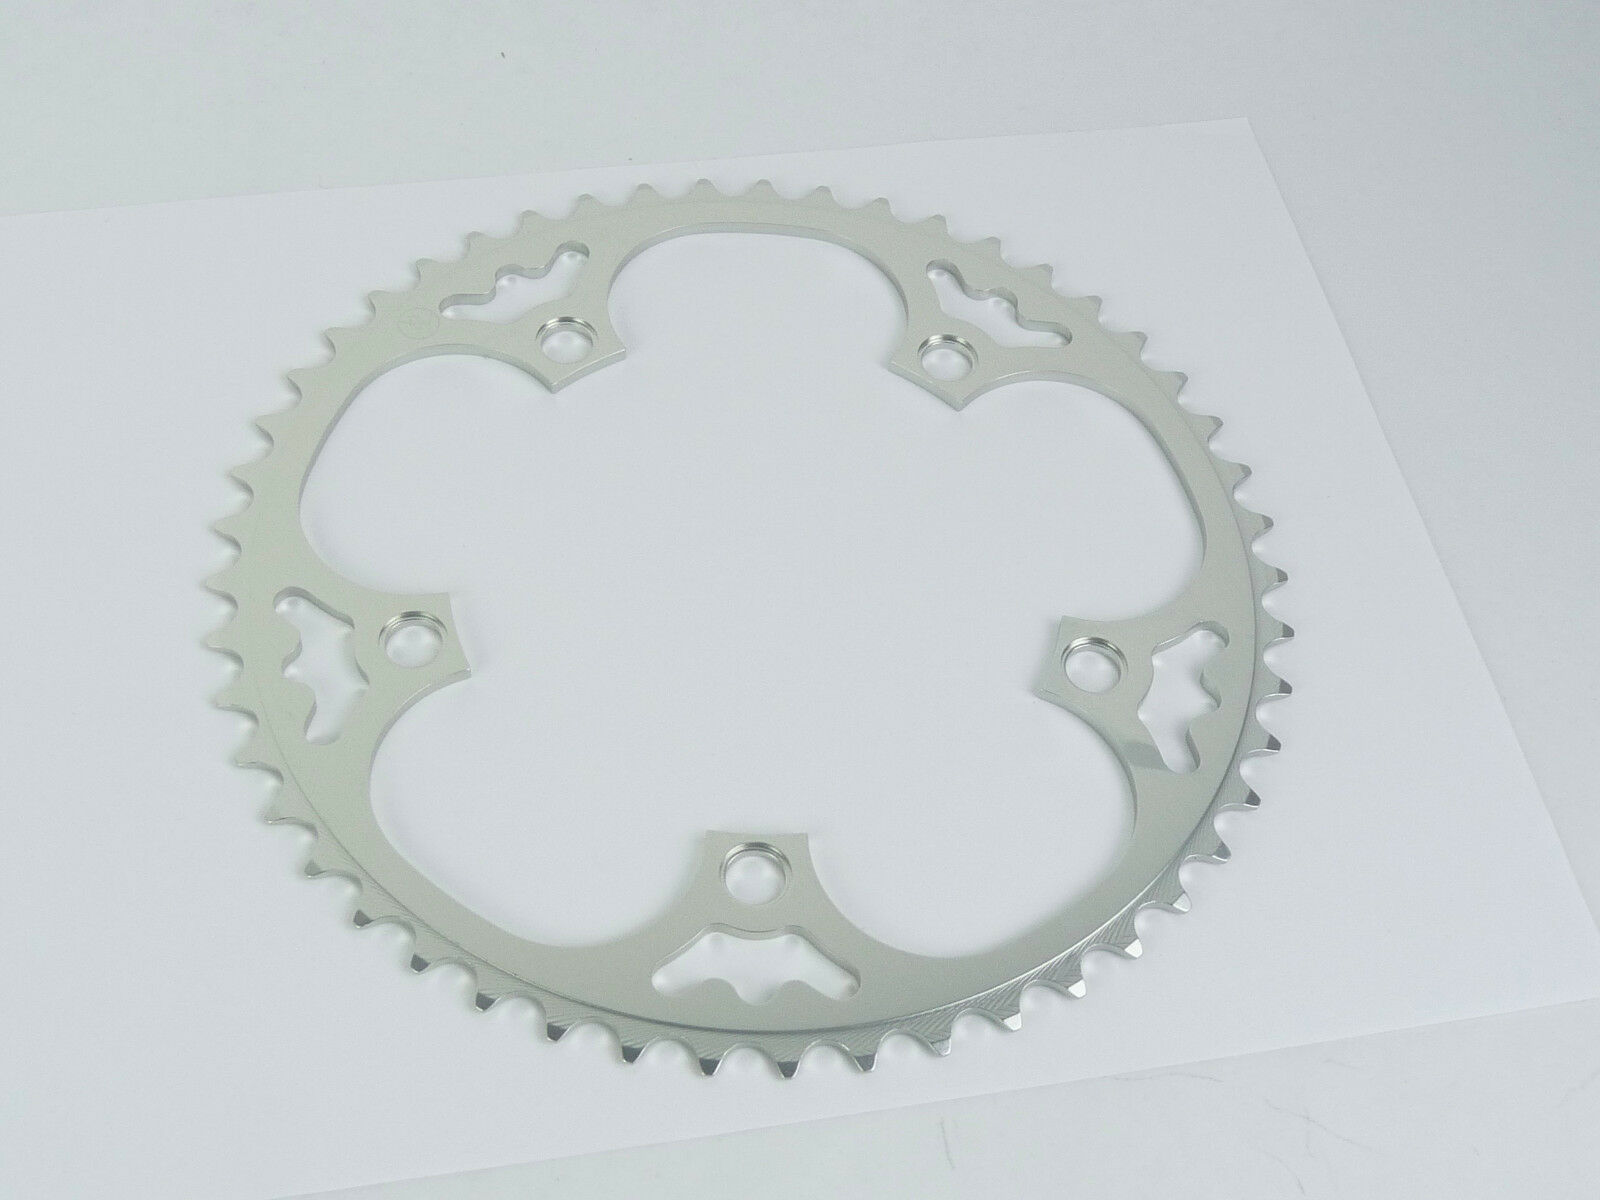 Willow 49T chainring 130 BCD made  in the USA Vintage Rivendell Bicycle NOS  find your favorite here